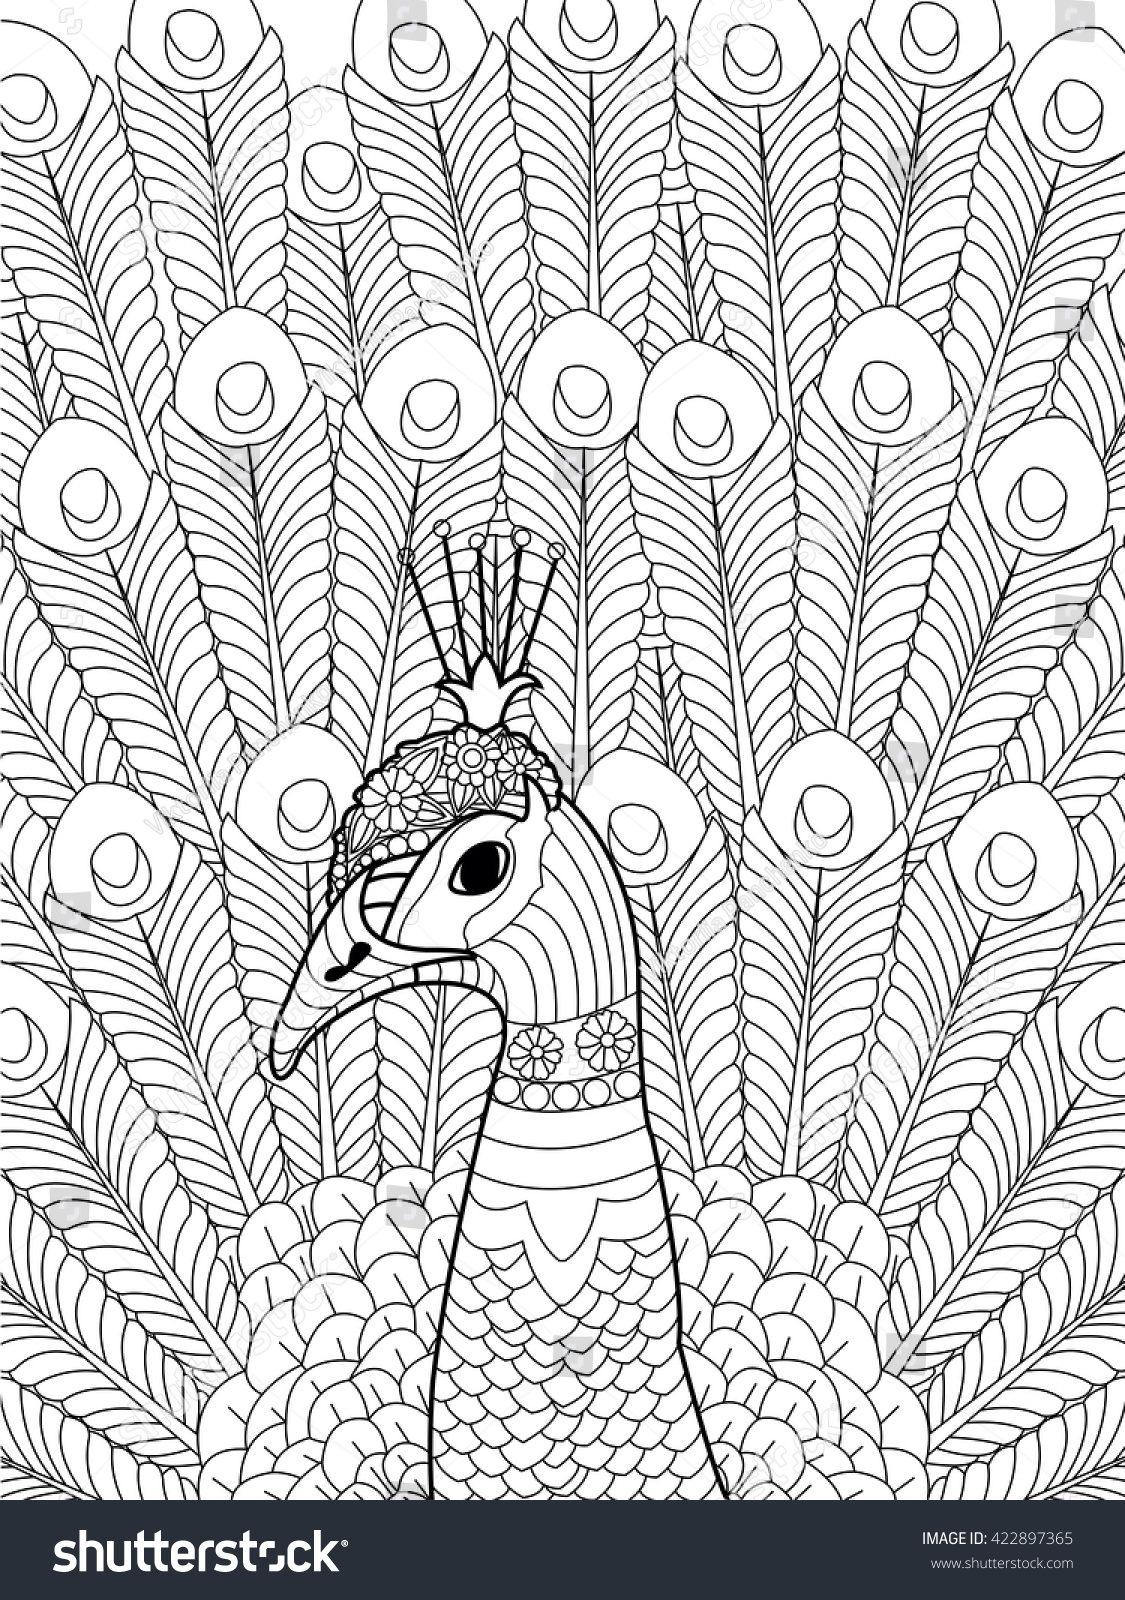 Stress coloring books for adults - Peacock Coloring Book For Adults Raster Illustration Anti Stress Coloring For Adult Zentangle